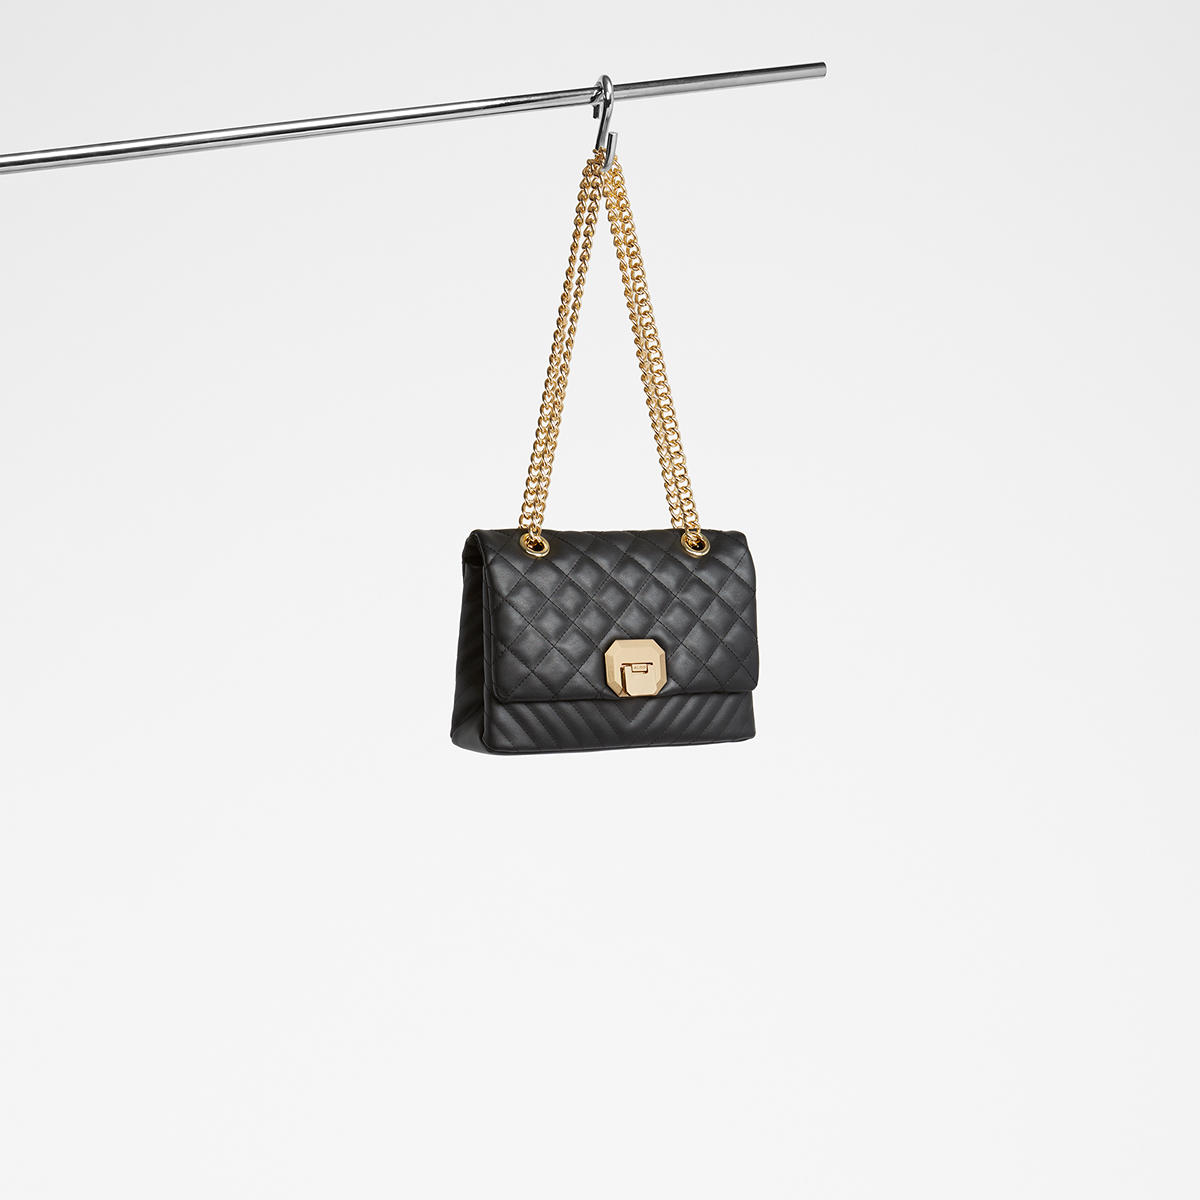 7311e978c70 ALDO Menifee black quilted cross body bag with double gold chunky chain  strap